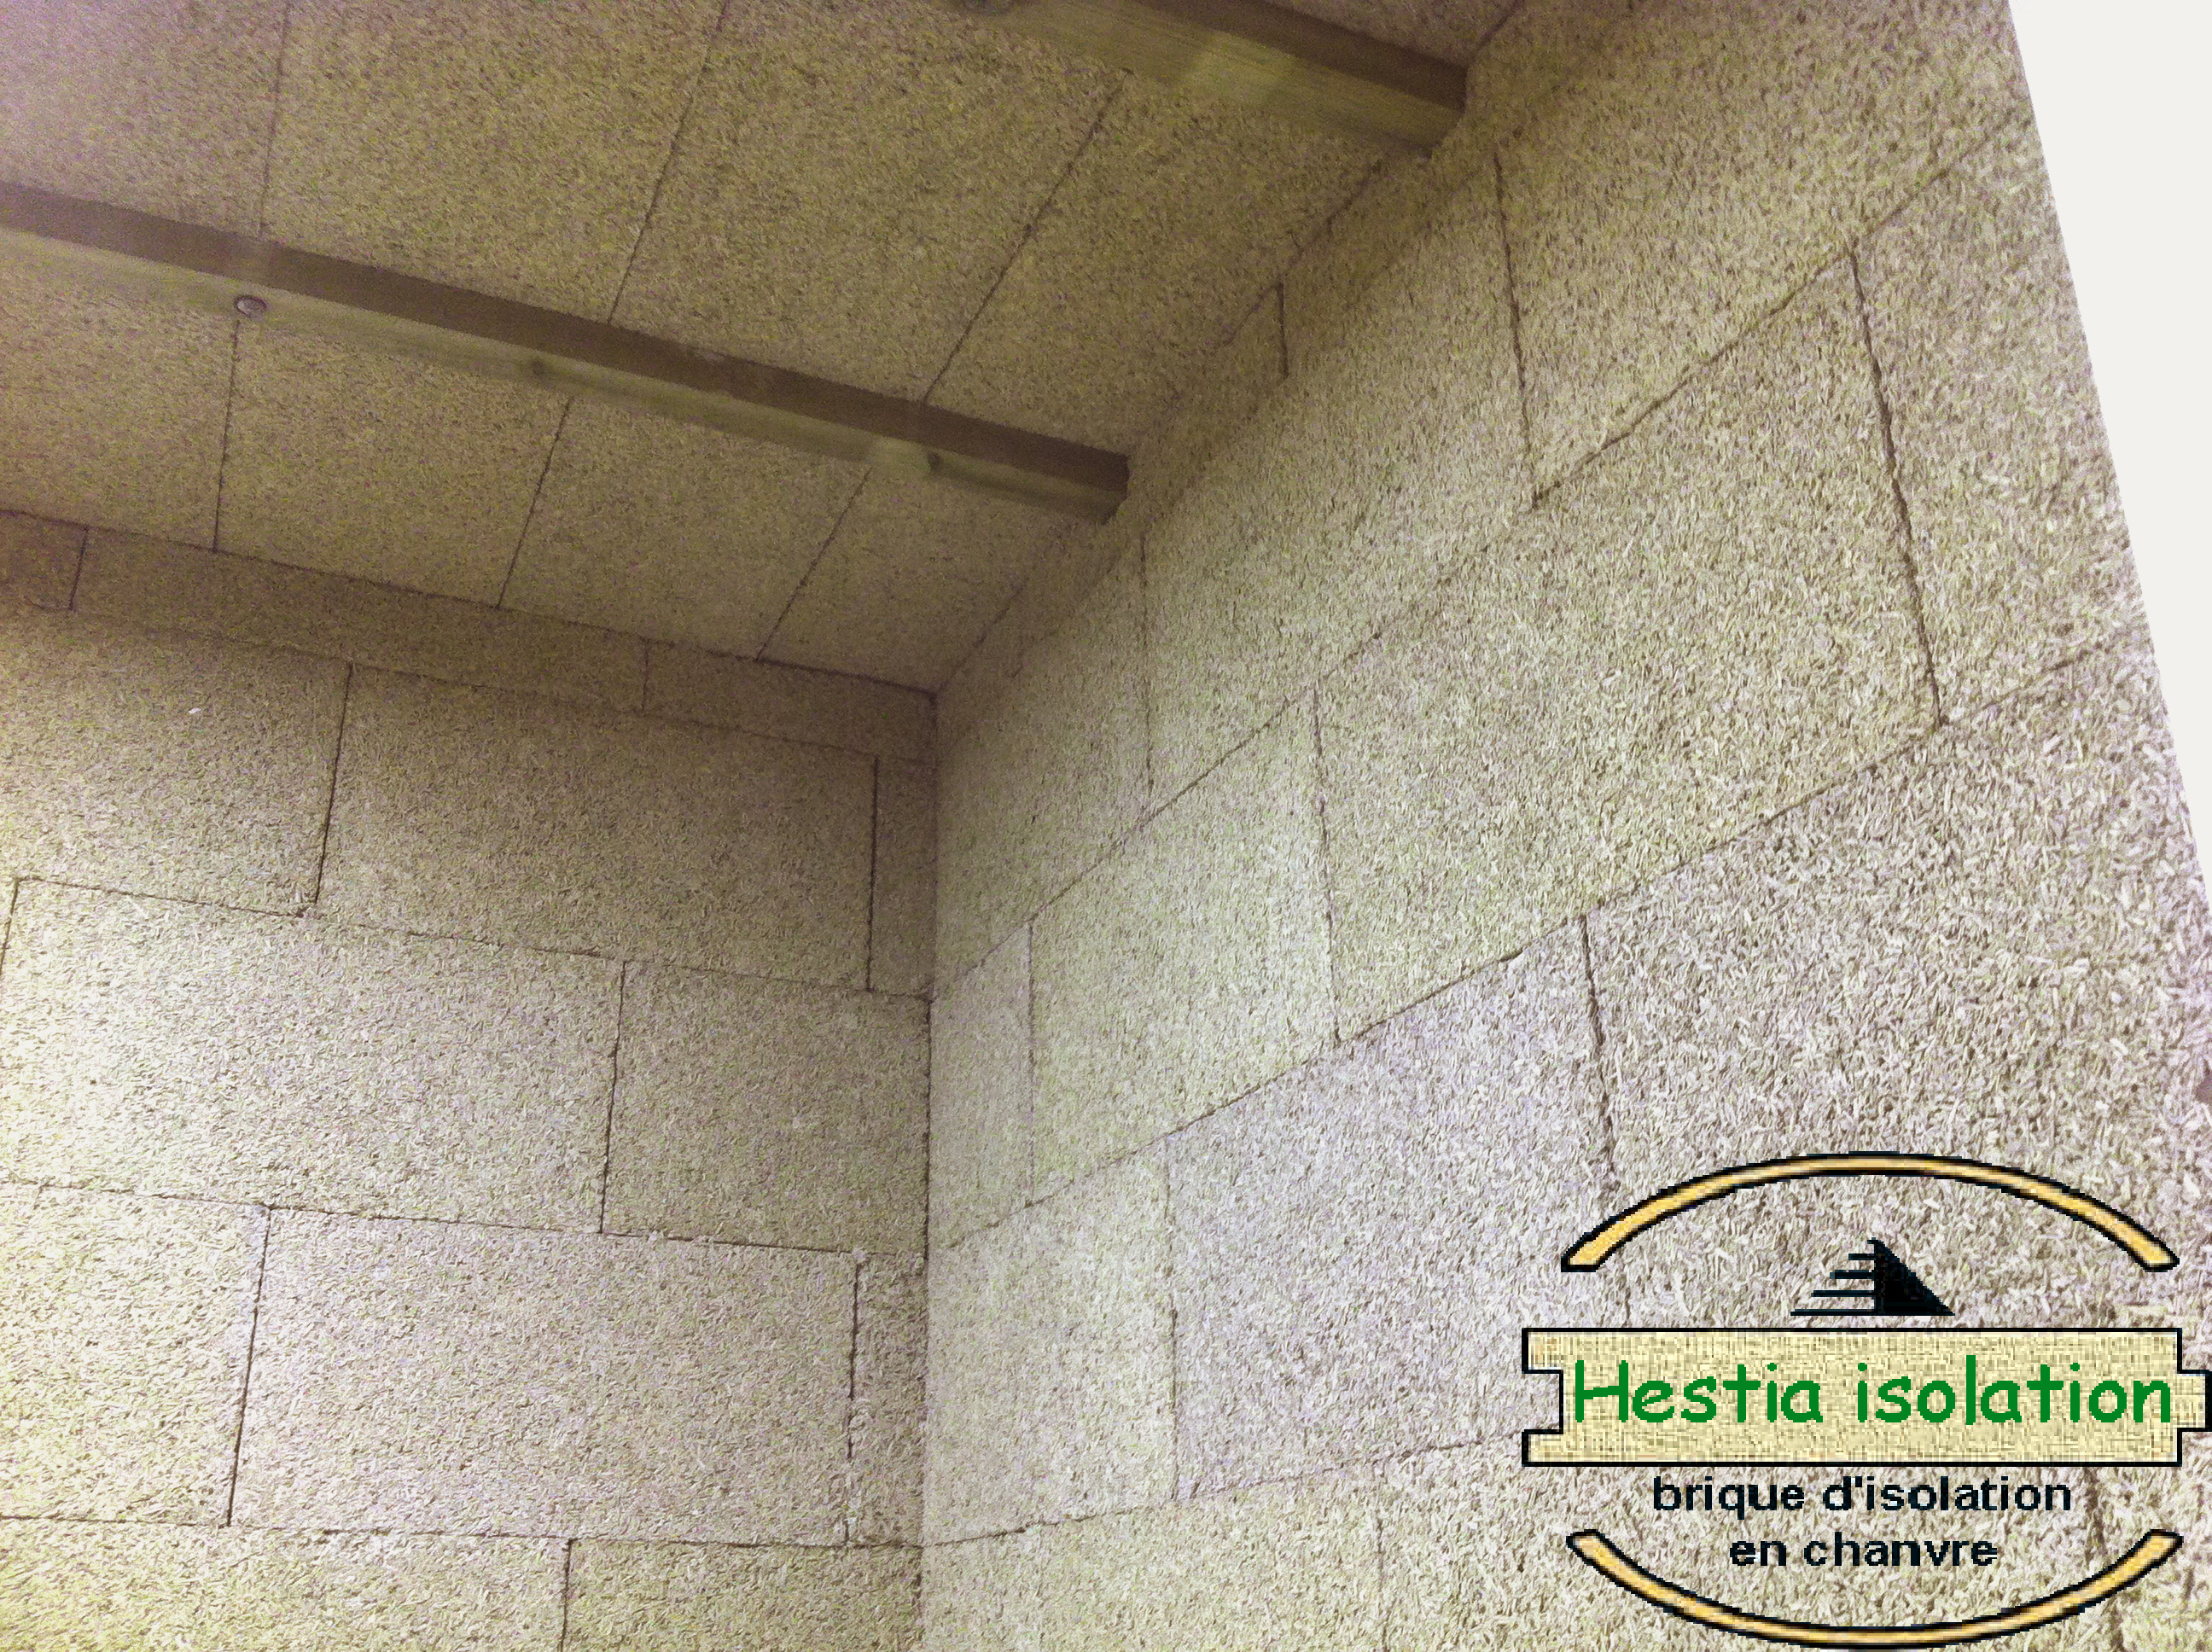 Hestia acoustic treatment sound insulation hemp brick block panels tiles panel tile best recording studio absorption musical musical room concert rehearsal drums sax piano guitar hemp home theater rectification noise interior exterior quality lime